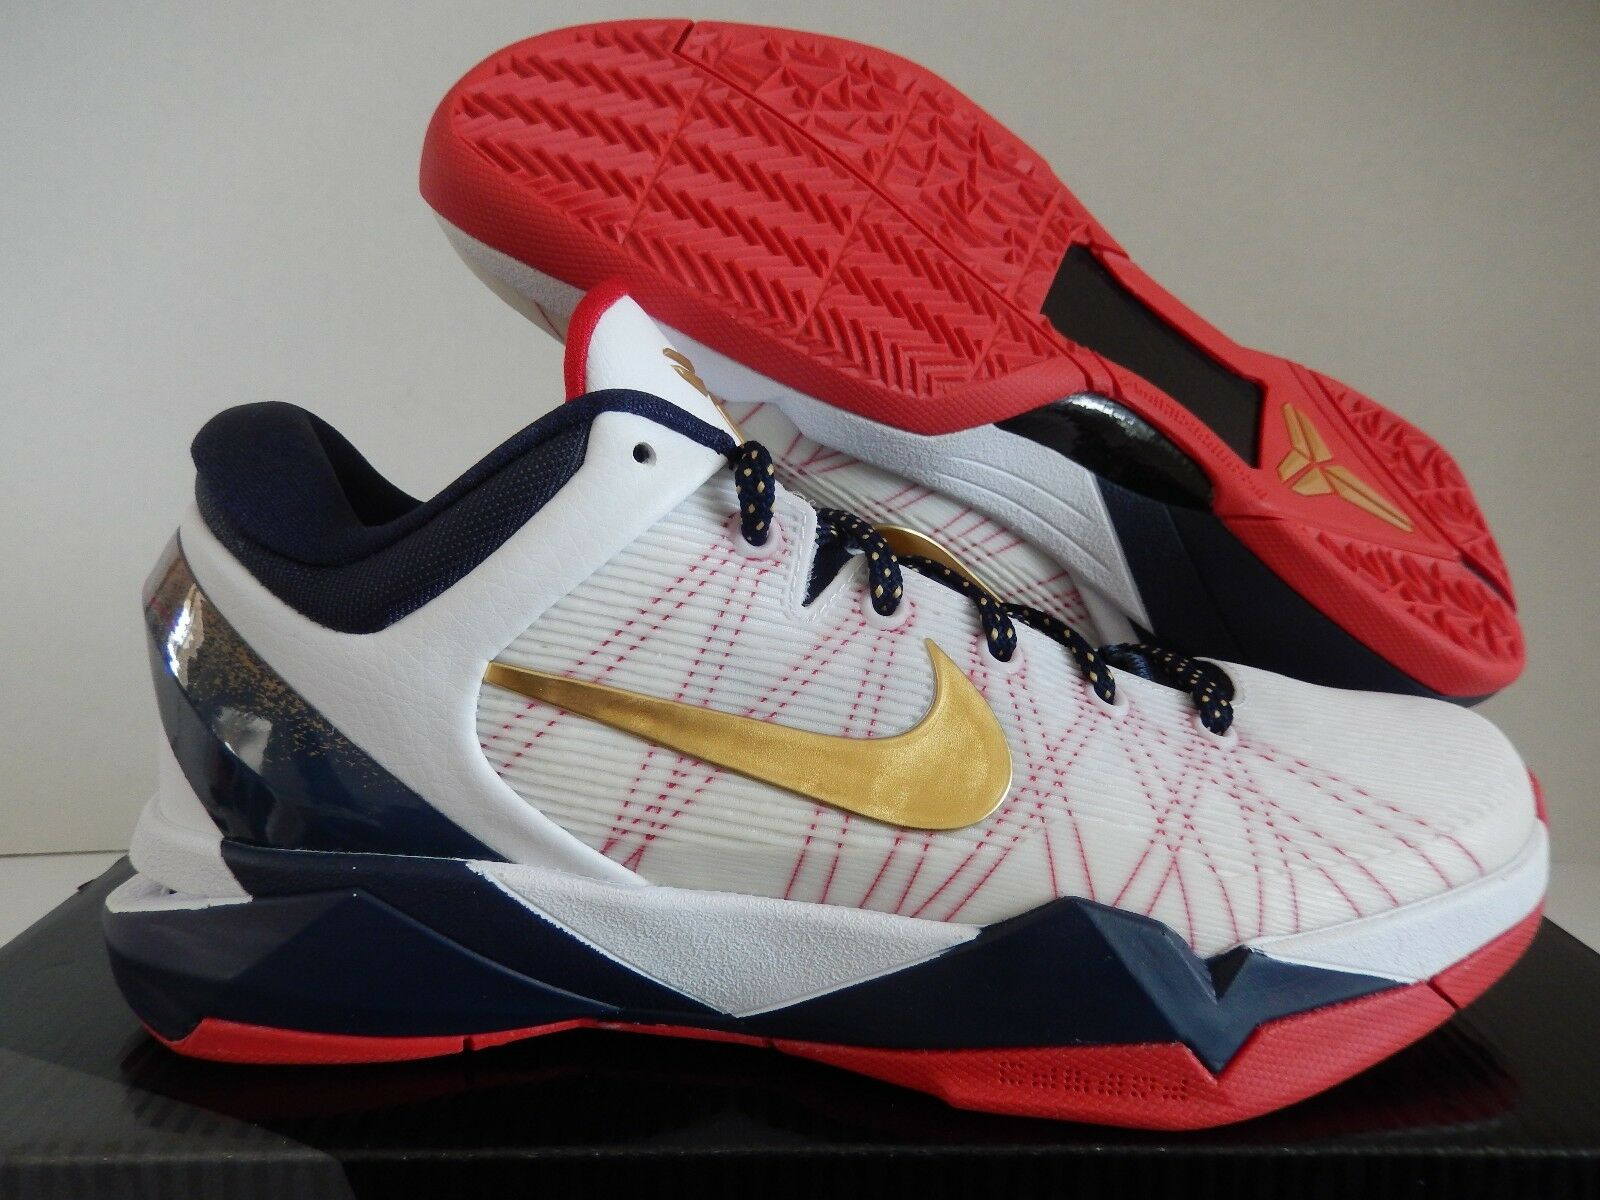 competitive price 39692 499da ... coupon code for nike usa zoom kobe vii 7 usa nike olympics blanco  systemdoradoazul 4883720184 3cc04c